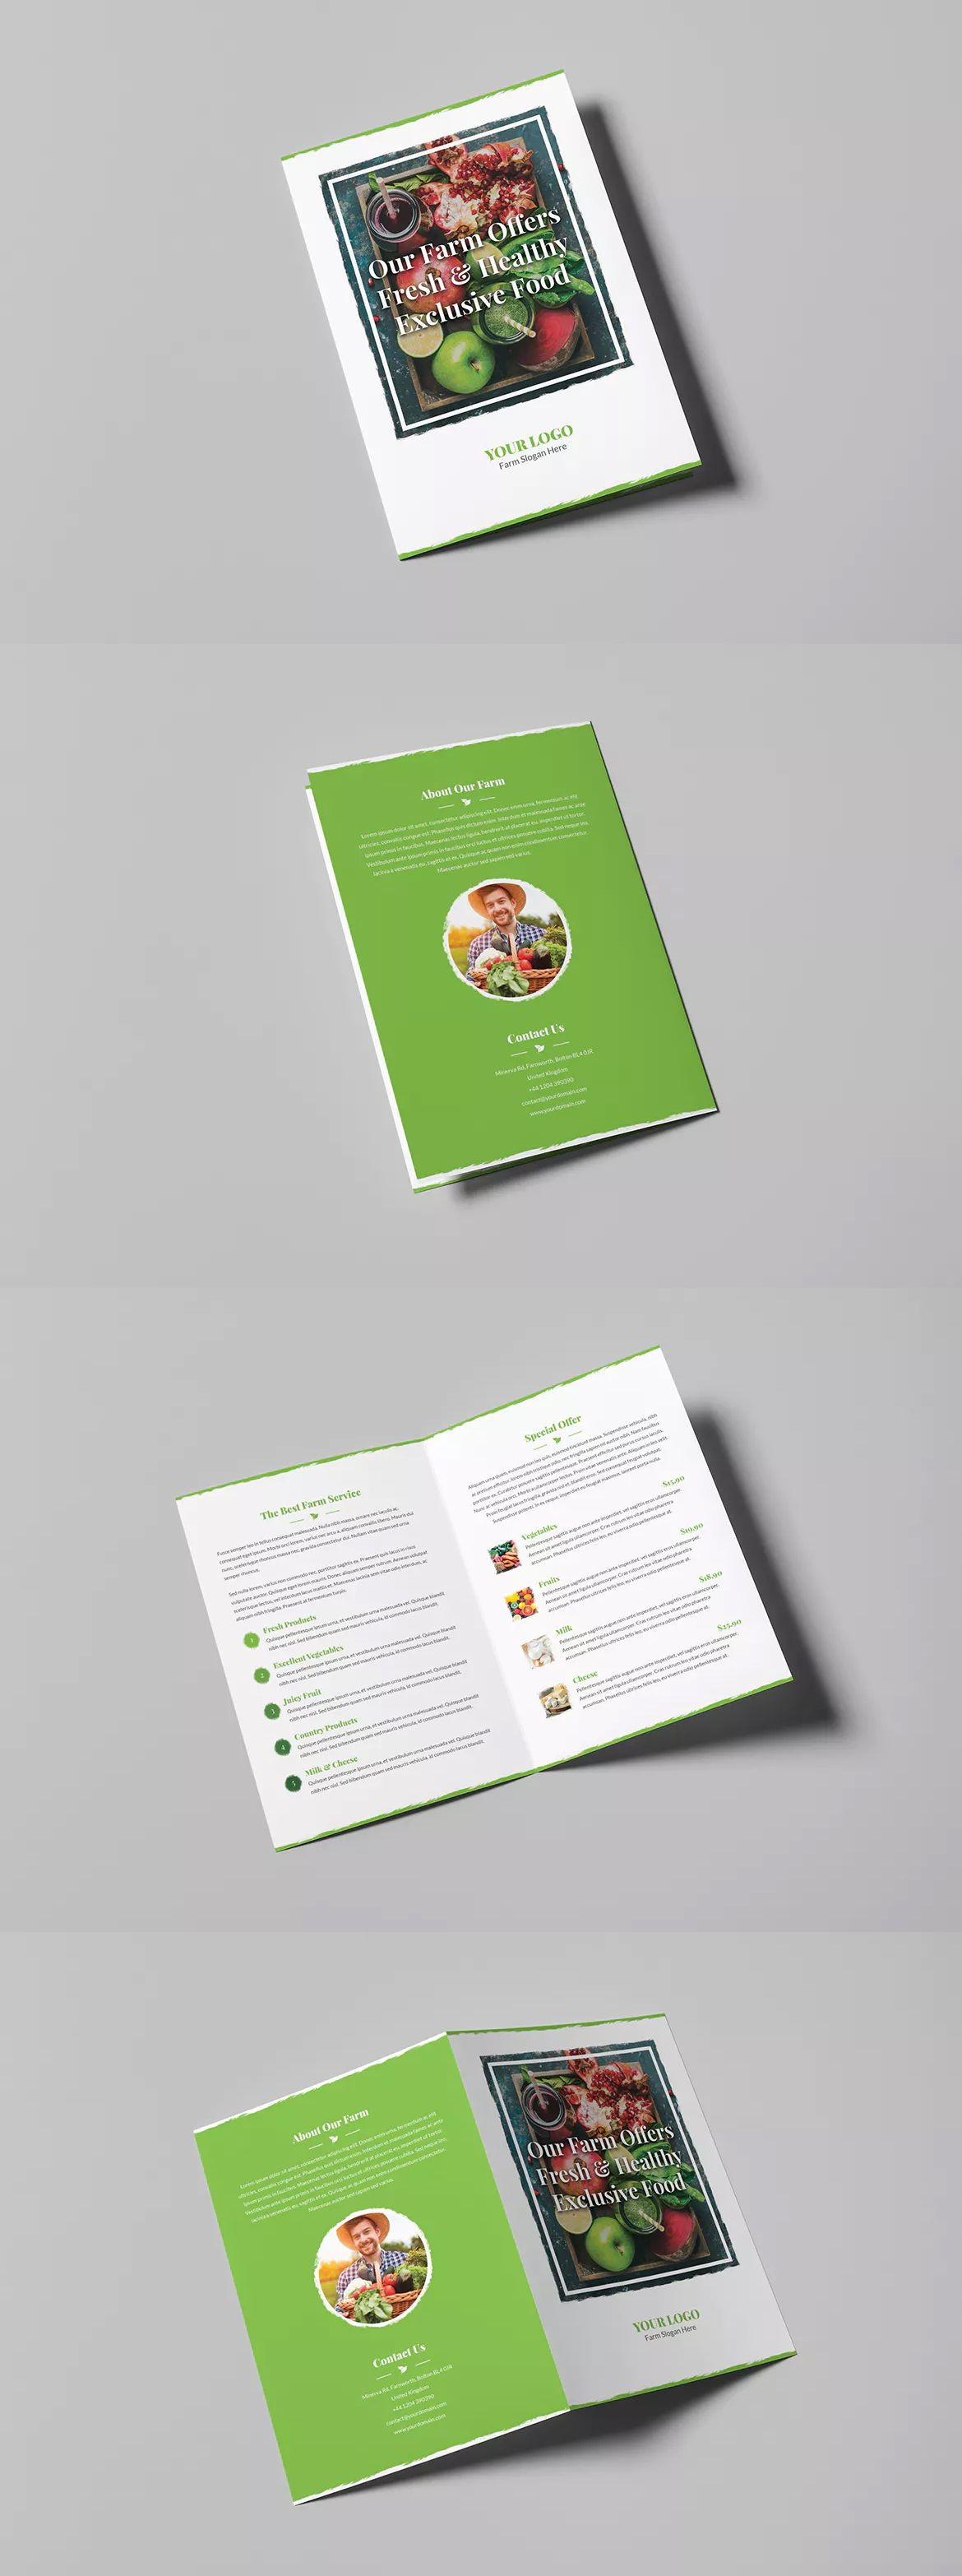 Organic Food Bi-Fold Brochure Template PSD - A4 and US Letter Size ...